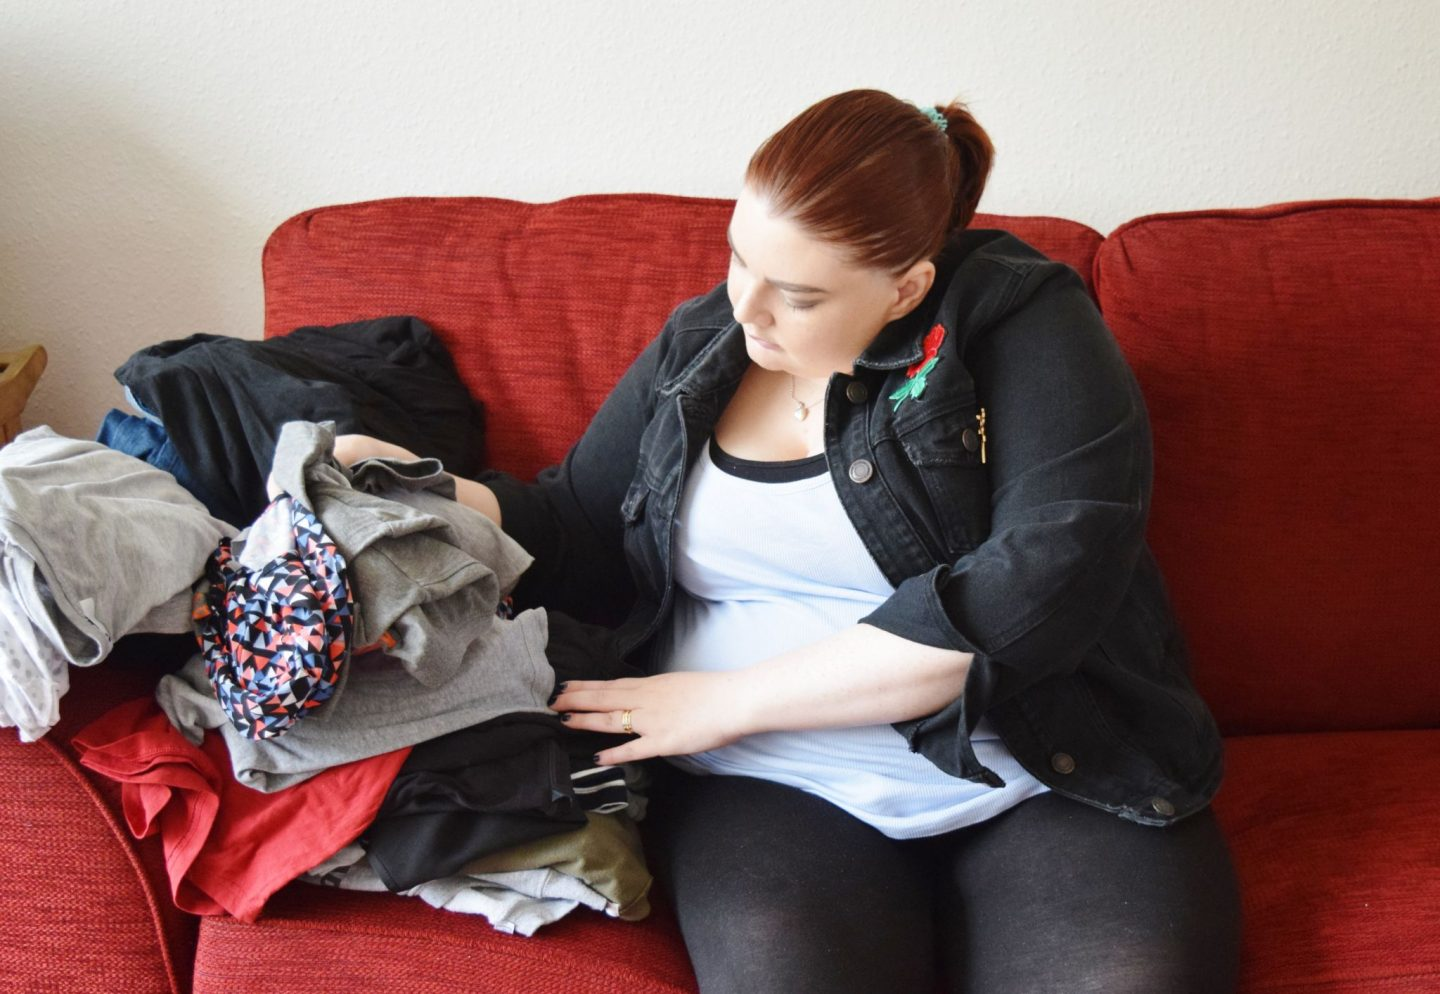 laura pearson-smith give up clothes for good